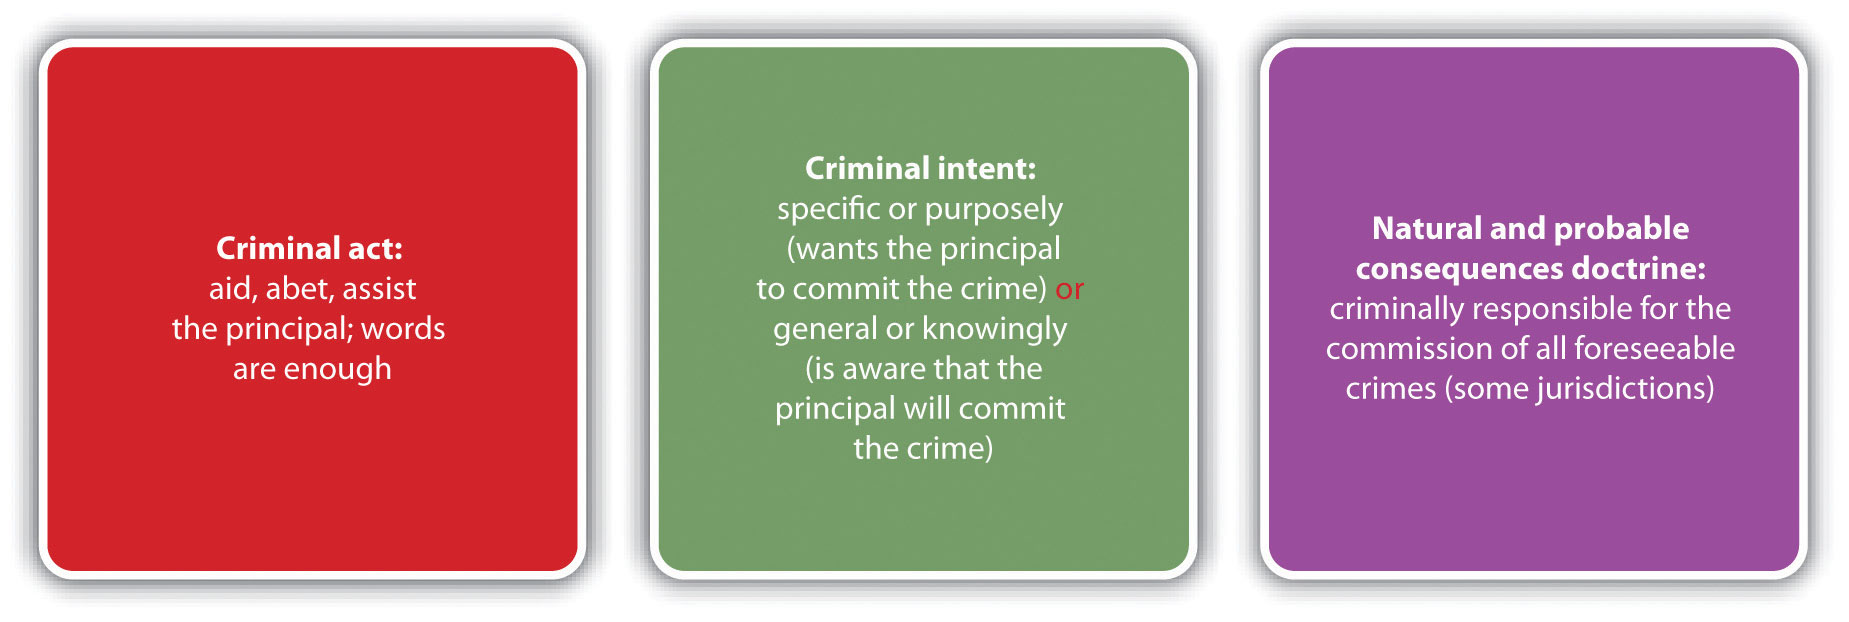 Diagram of Accomplice Liability. Criminal act: aid, abet, assist the principal; words are enough. Criminal intent: specific or purposely (wants the principal to commit the crime) or general or knowingly (is aware that the principal will commit the crime). Natural and probable consequences doctrine: criminally responsible for the commission of all foreseeable crimes (some jurisdictions).